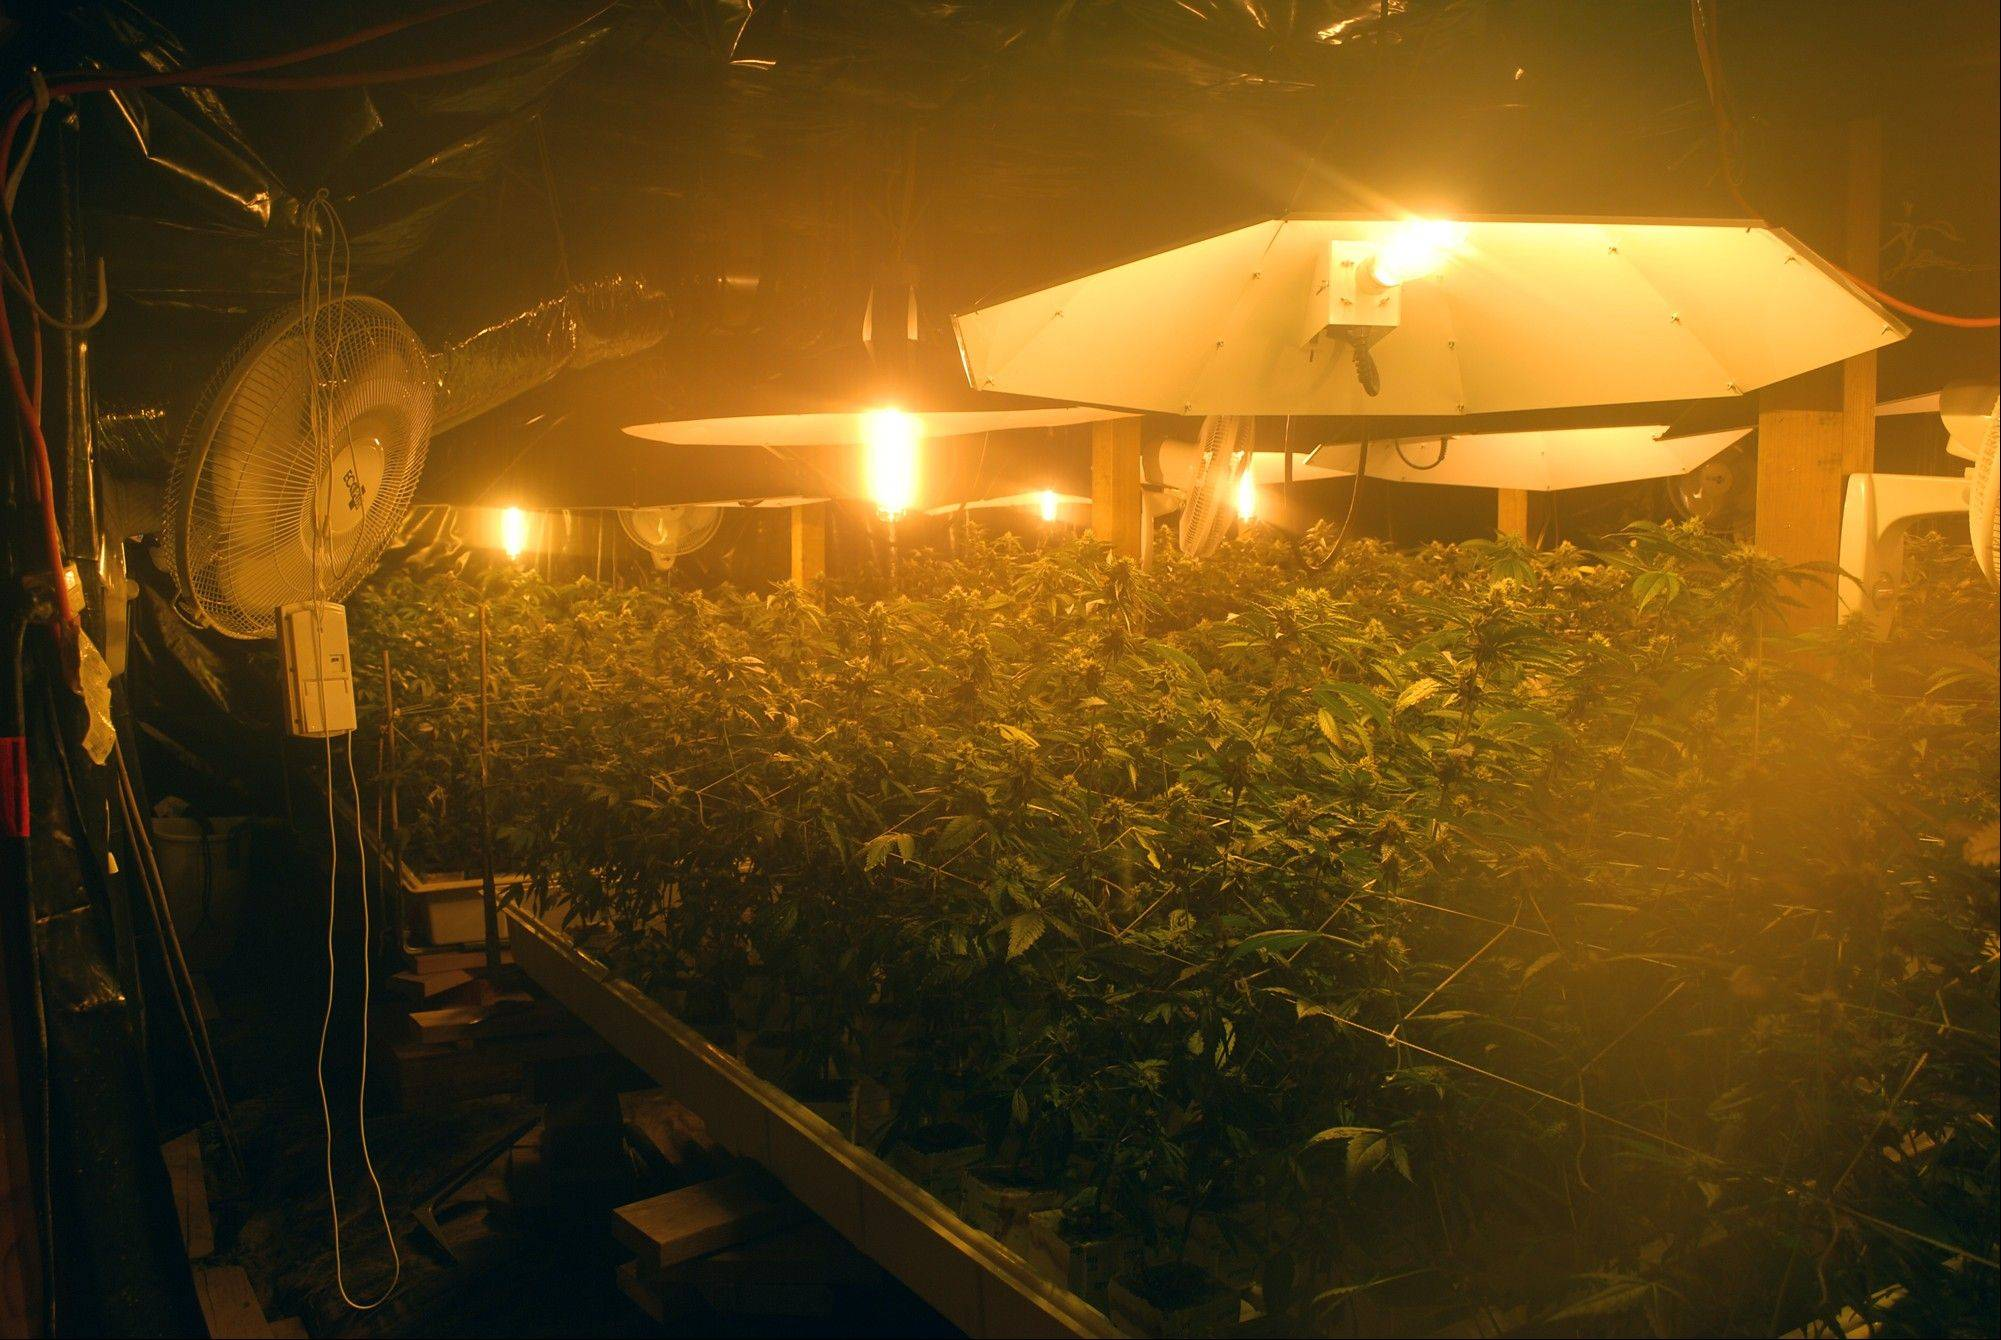 An indoor marijuana growing operation was photpgraphed after being raided by police. Fed up with the proliferation of industrial-scale indoor growing operations taking over homes in residential neighborhoods, city leaders are asking voters to to adopt a stiff new tax on excessive electricity use designed to drive large-scale growers out of town.